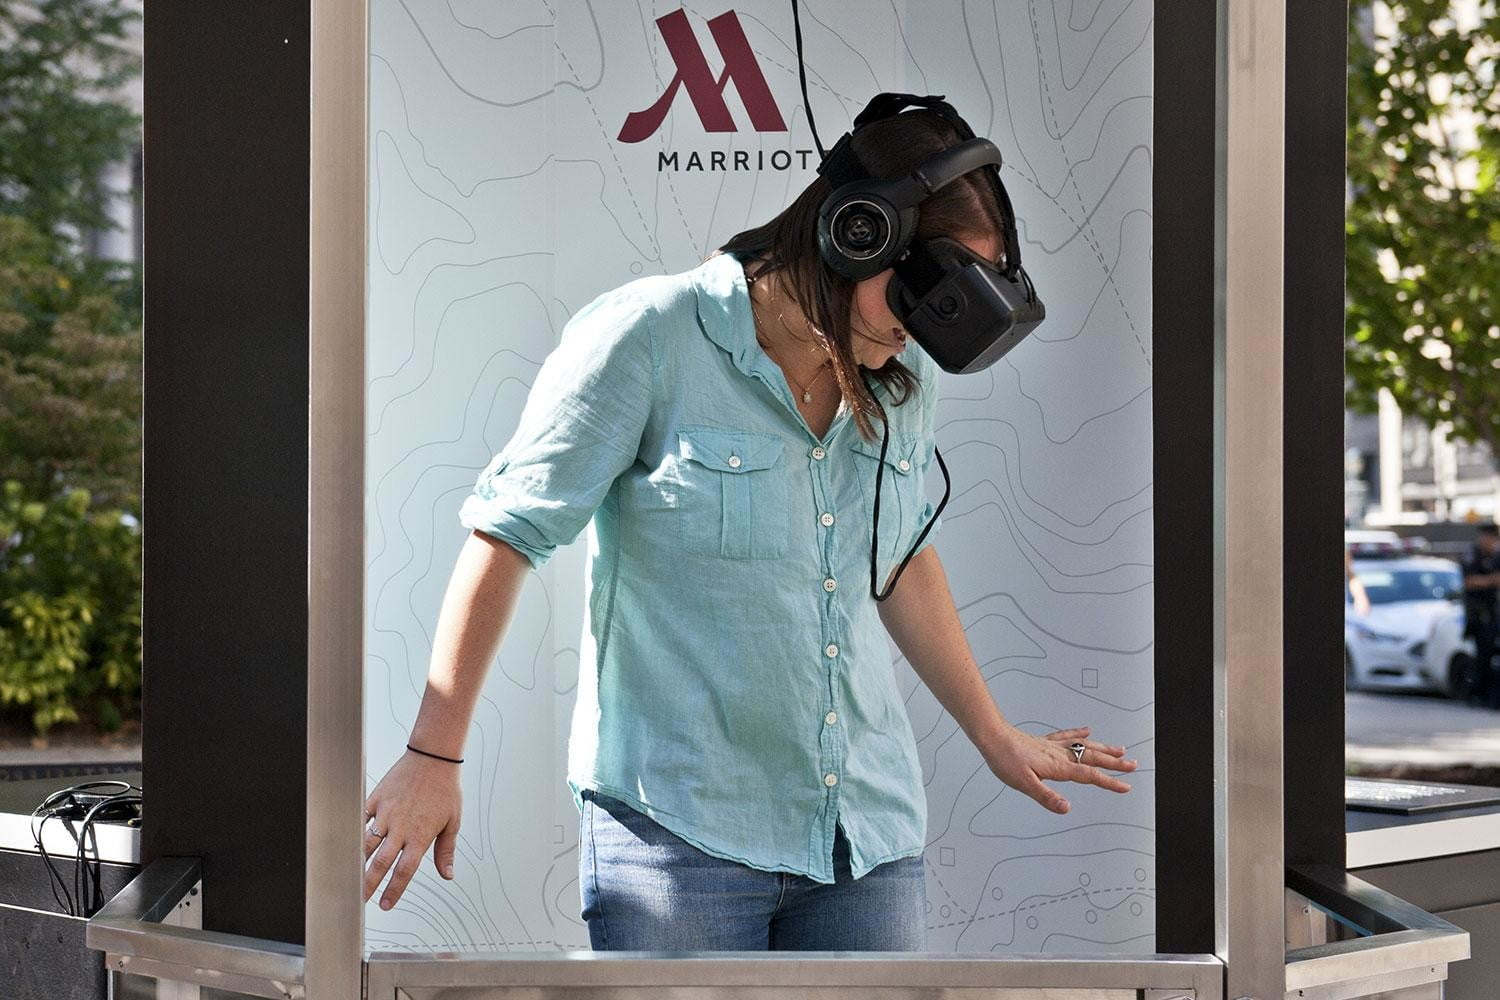 how virtual reality will change gaming movies sports travel marriott oculus 11